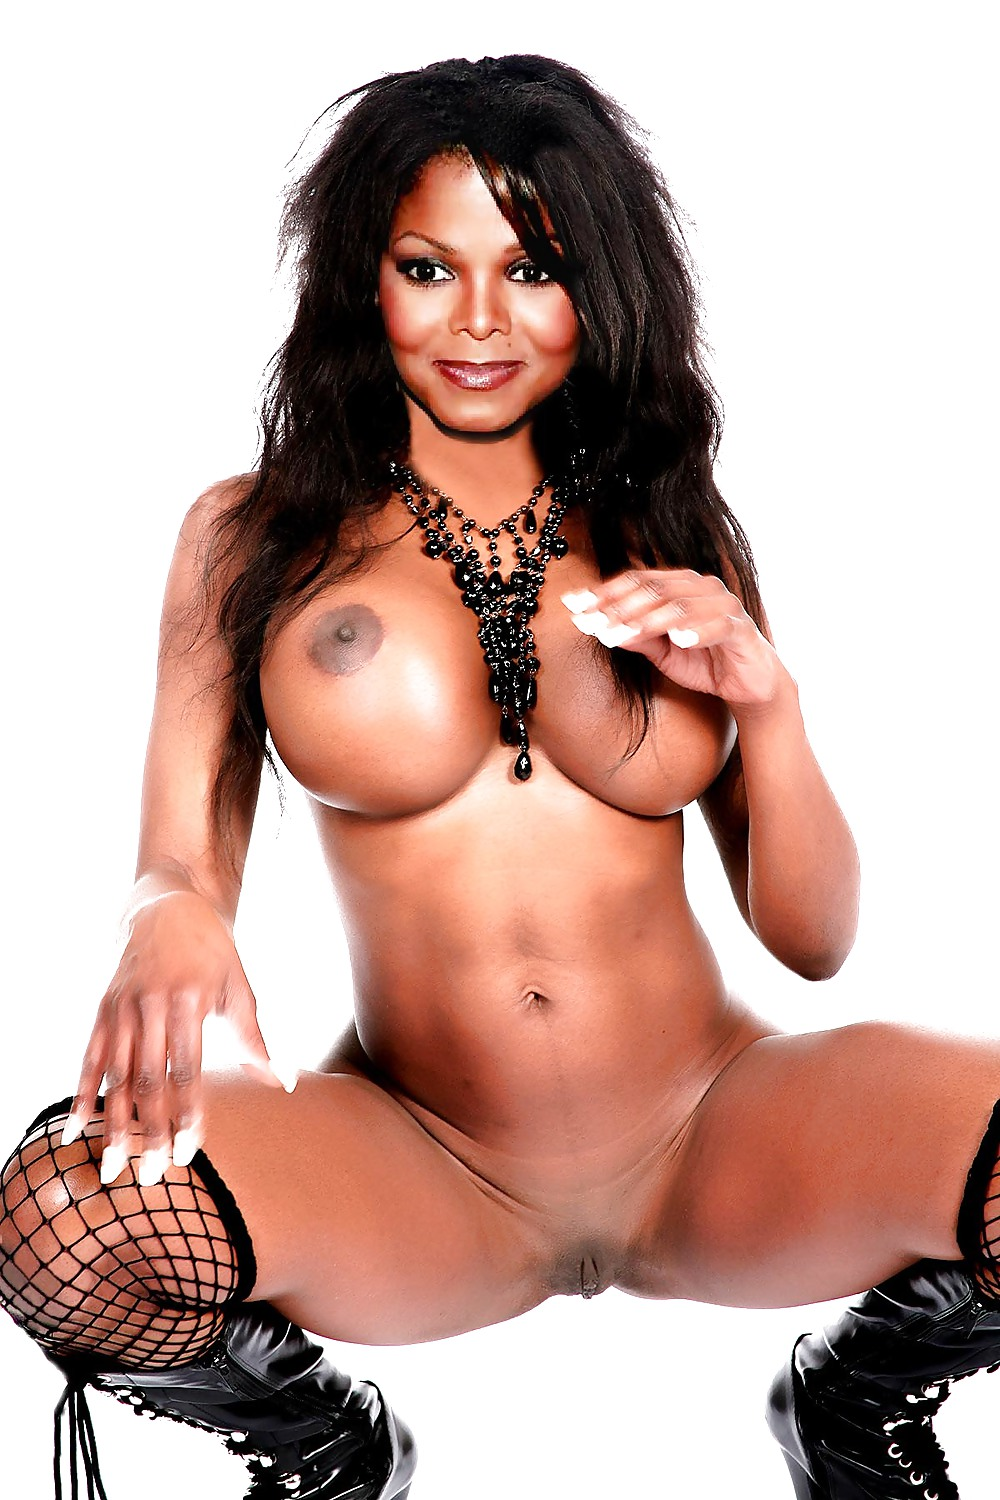 Free sexy photos of janet jackson